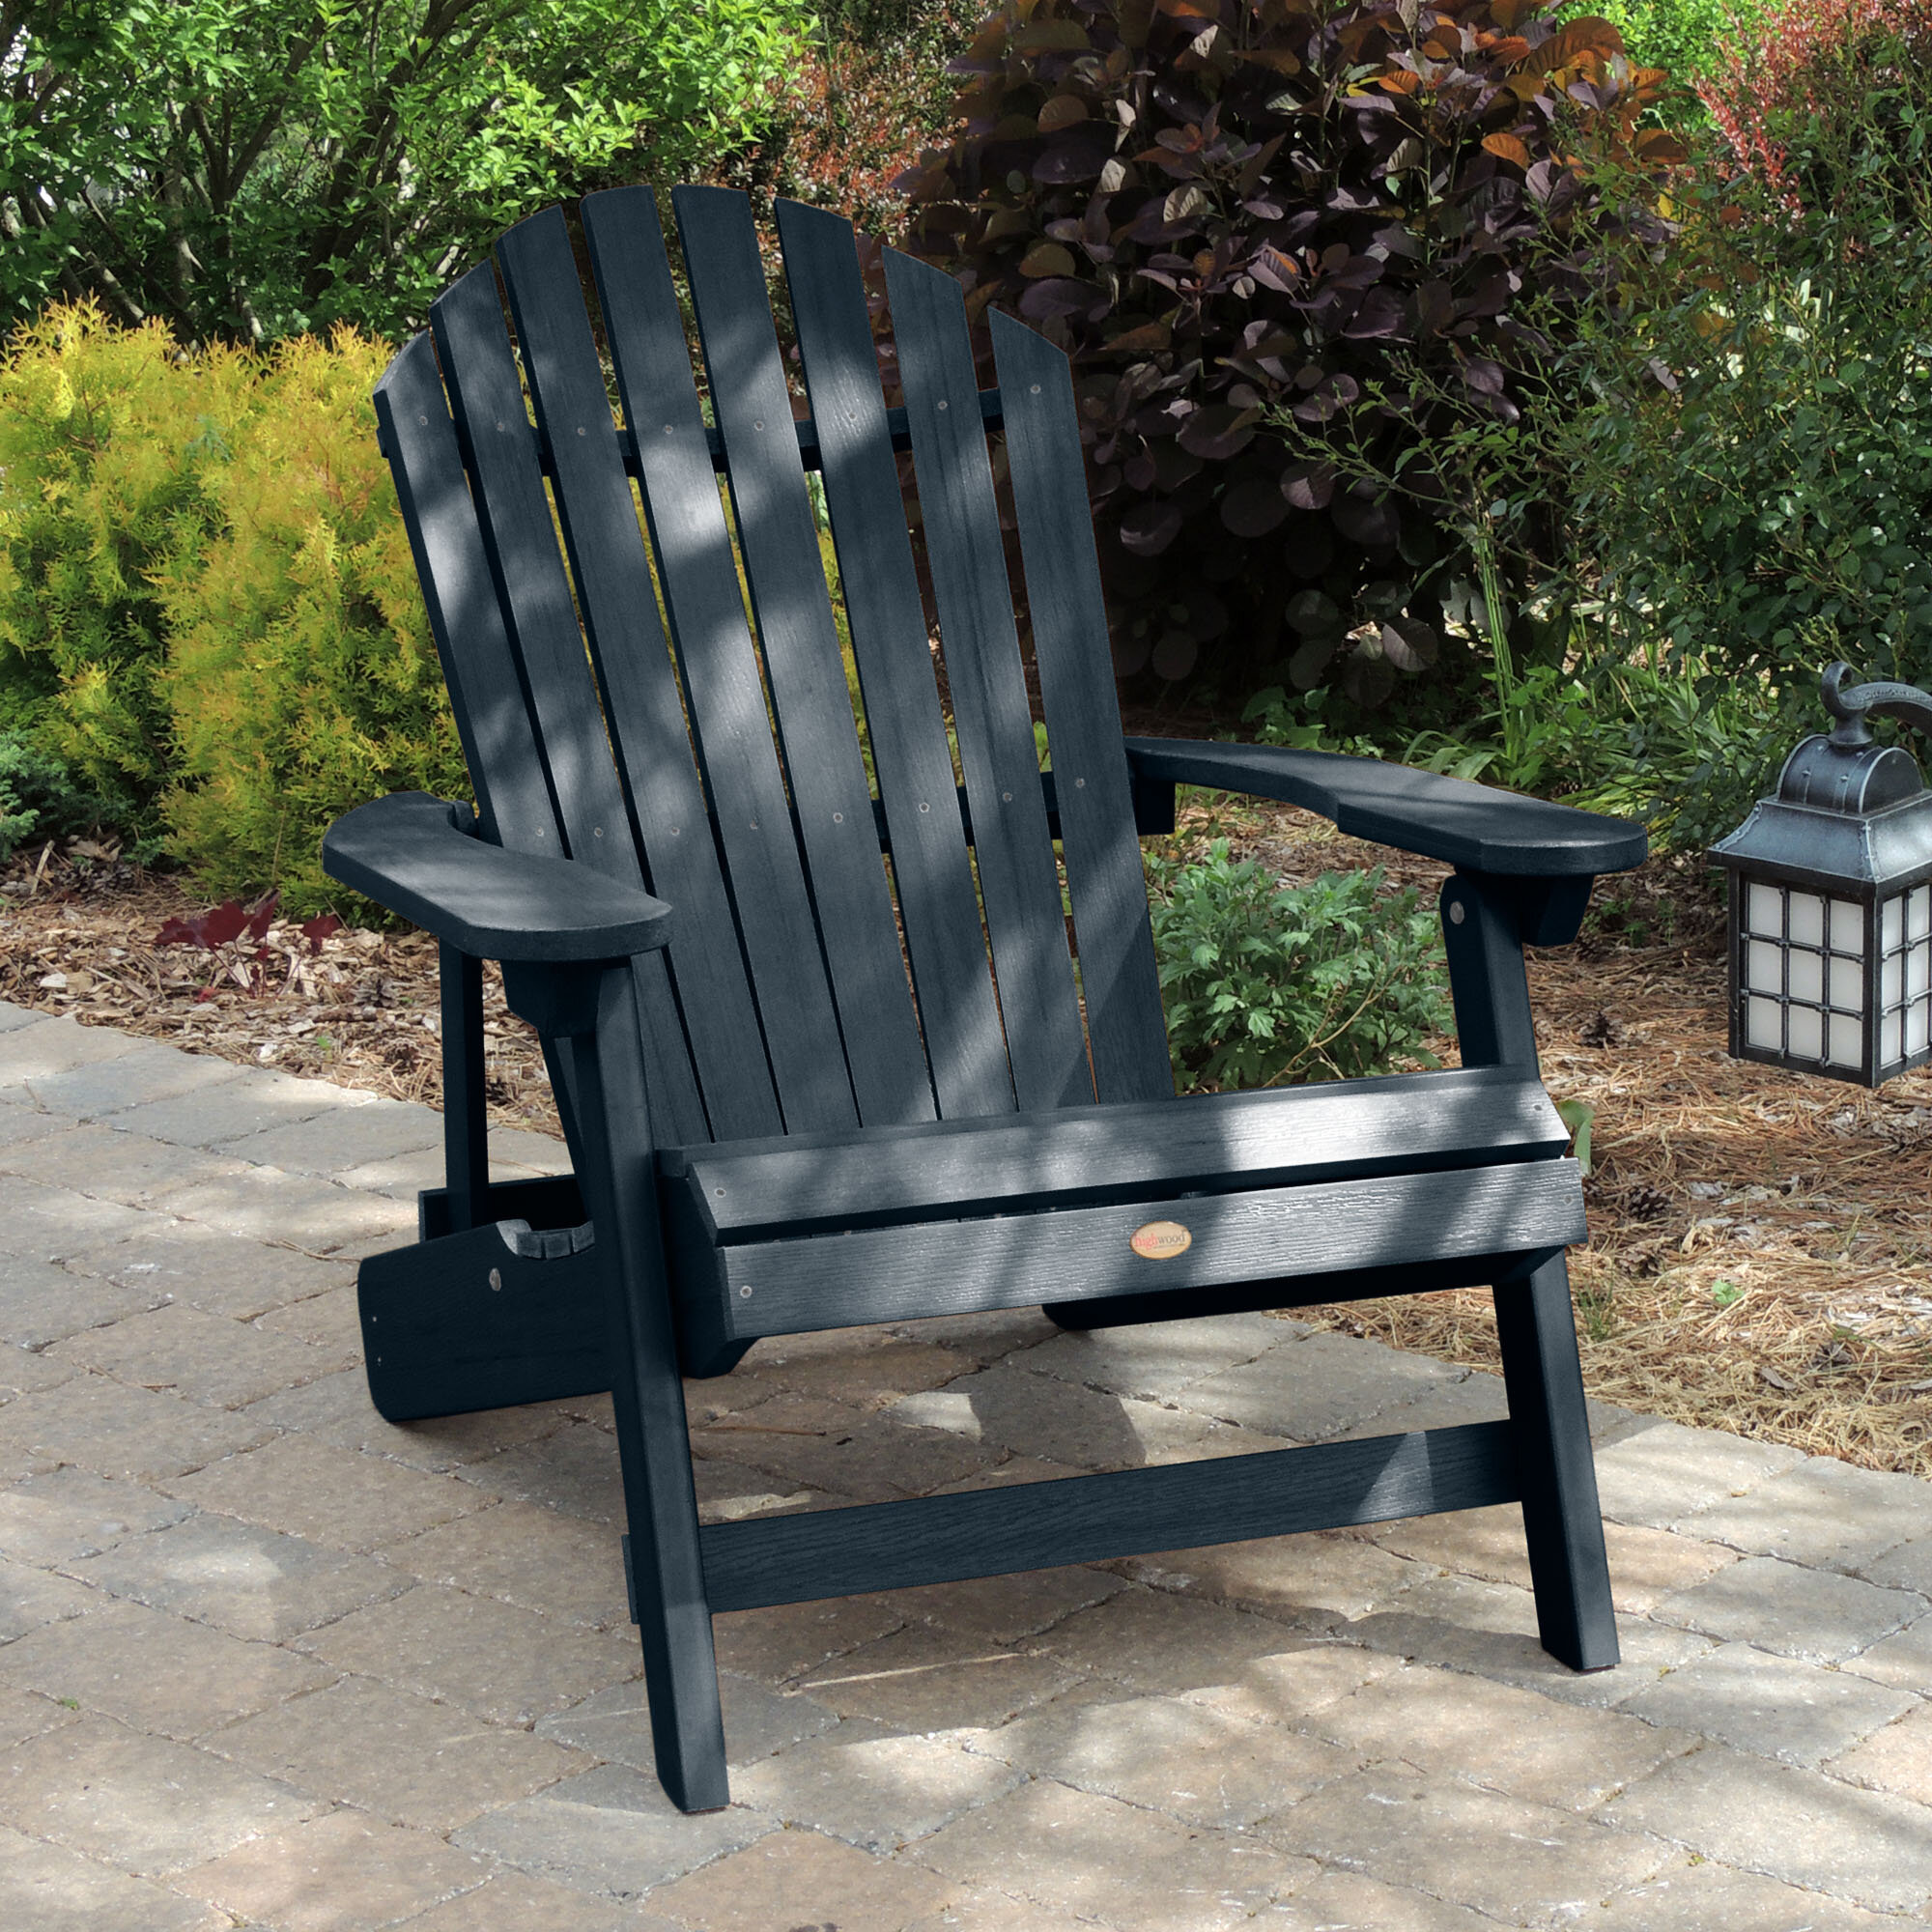 Aptscolumbusohiocom simple folding adirondack chair for Best brand of paint for kitchen cabinets with metal swordfish wall art